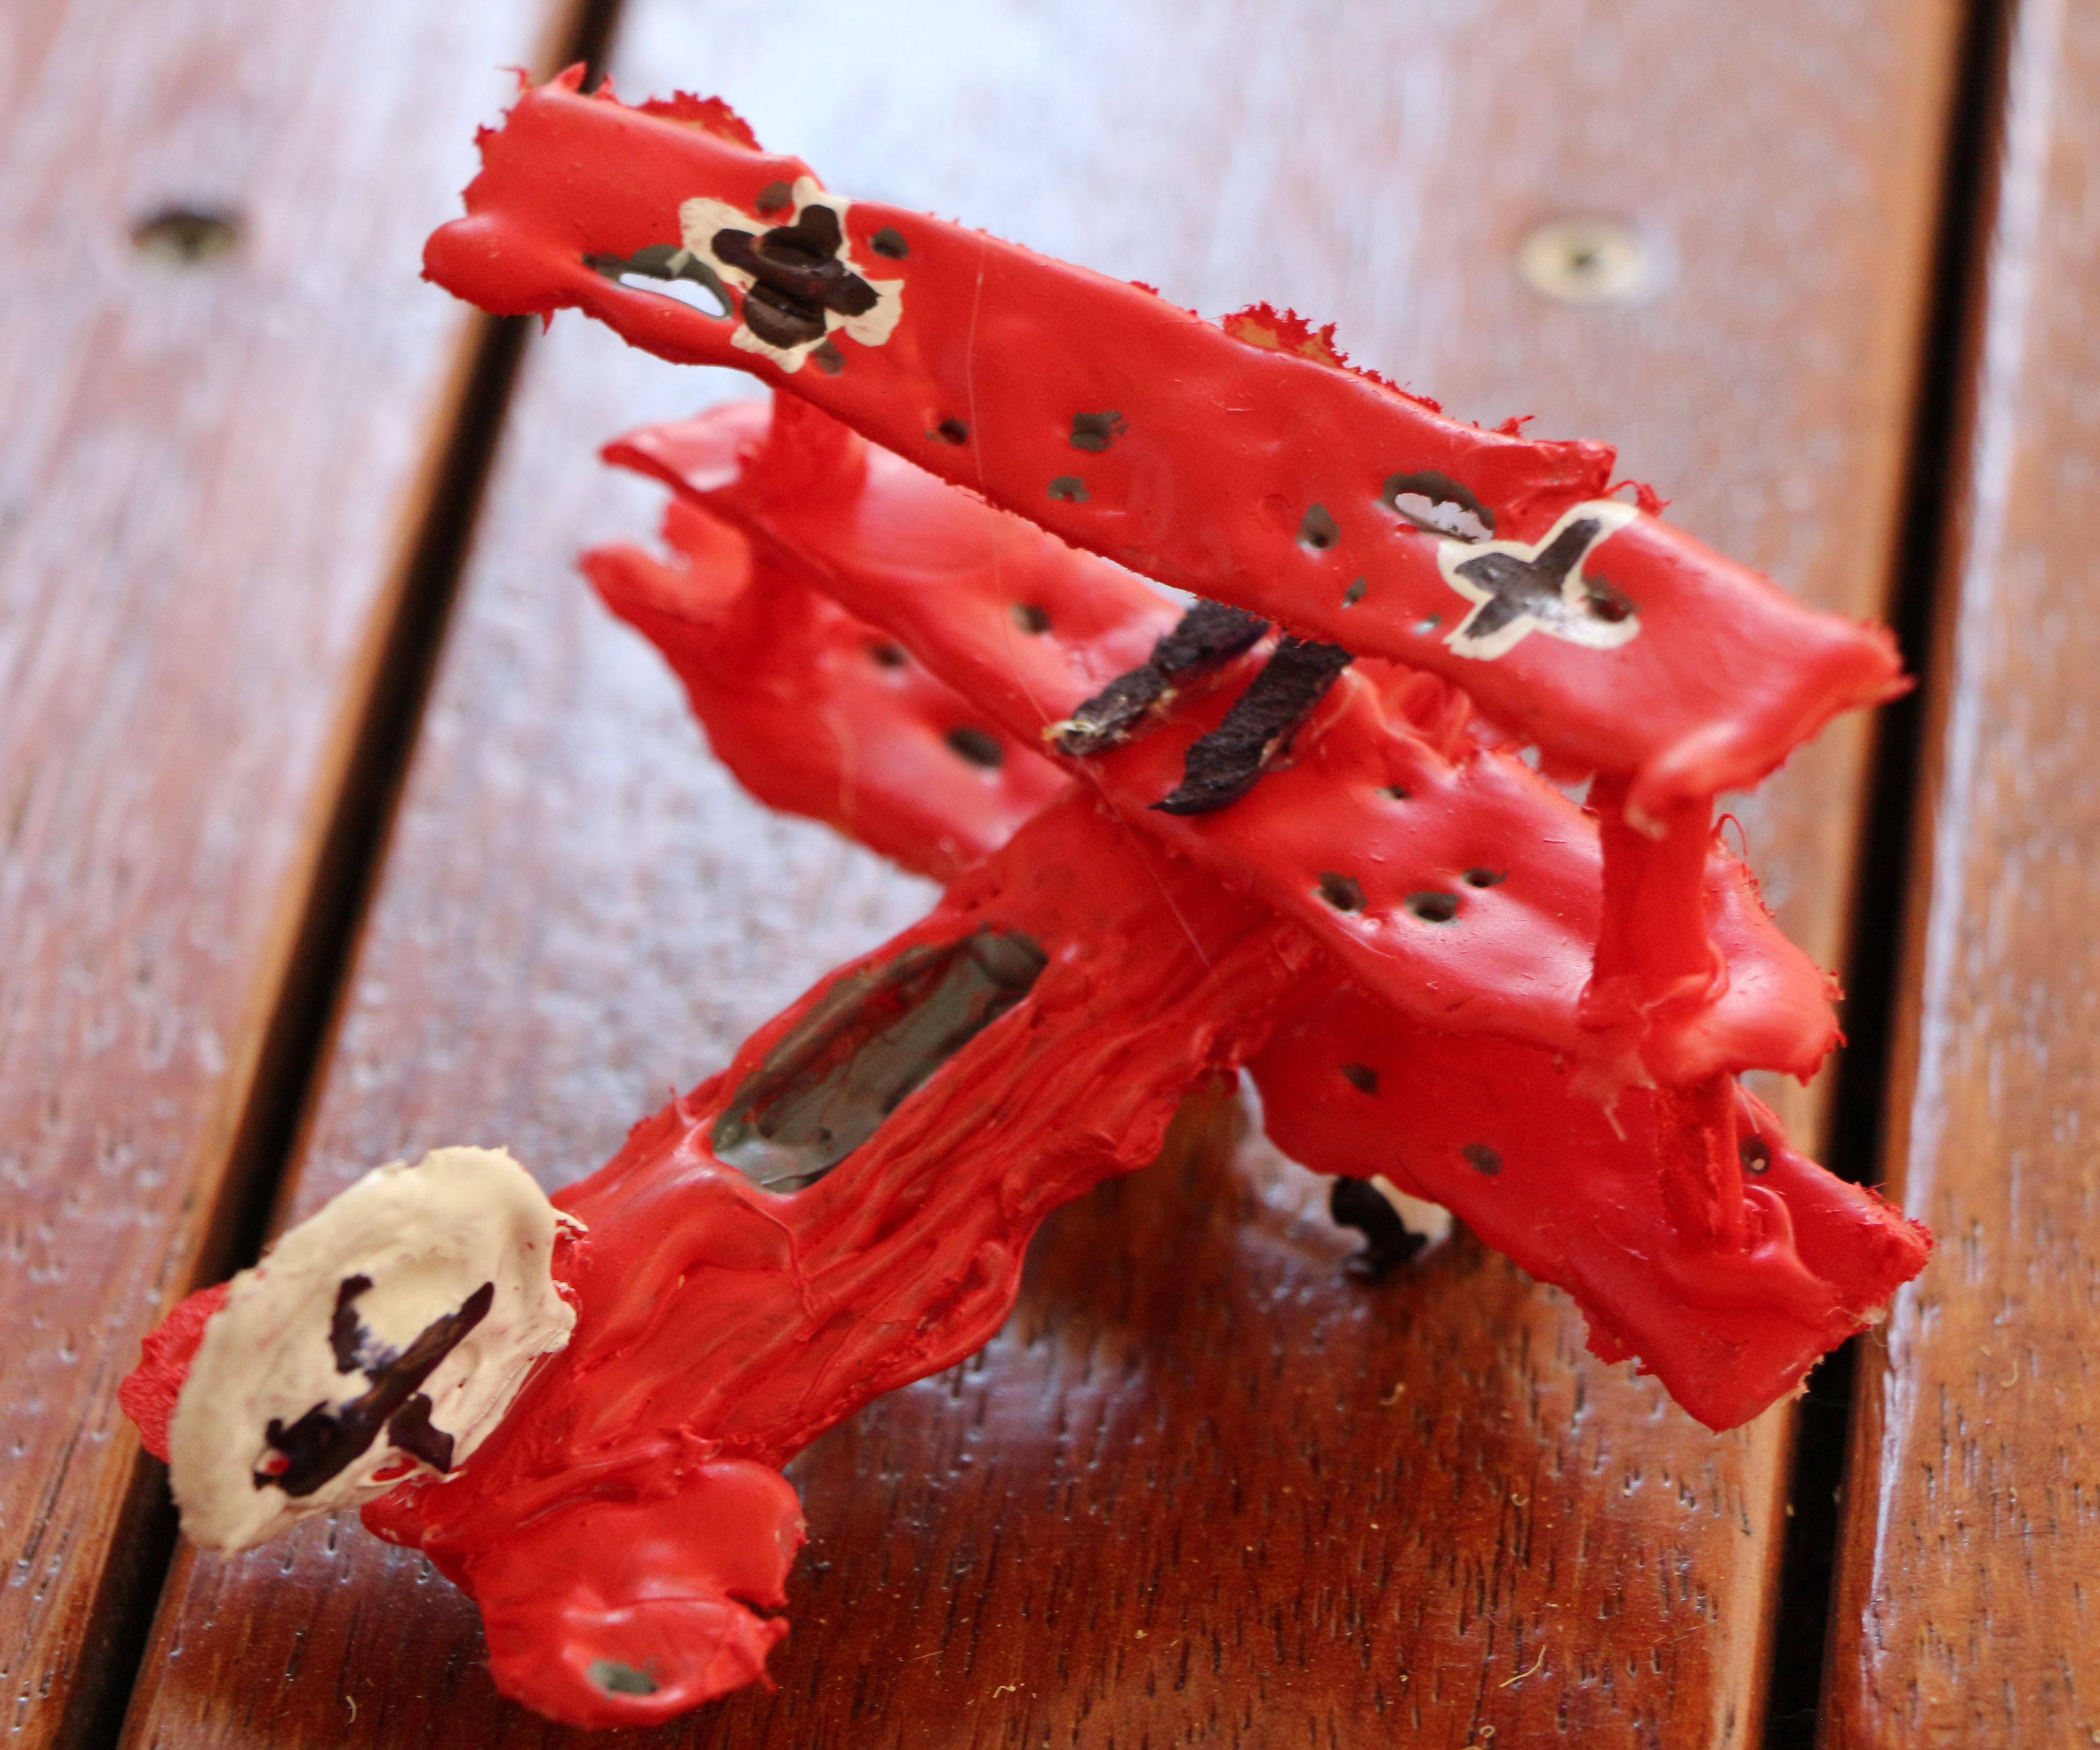 Red Barron 3D print with hot glue